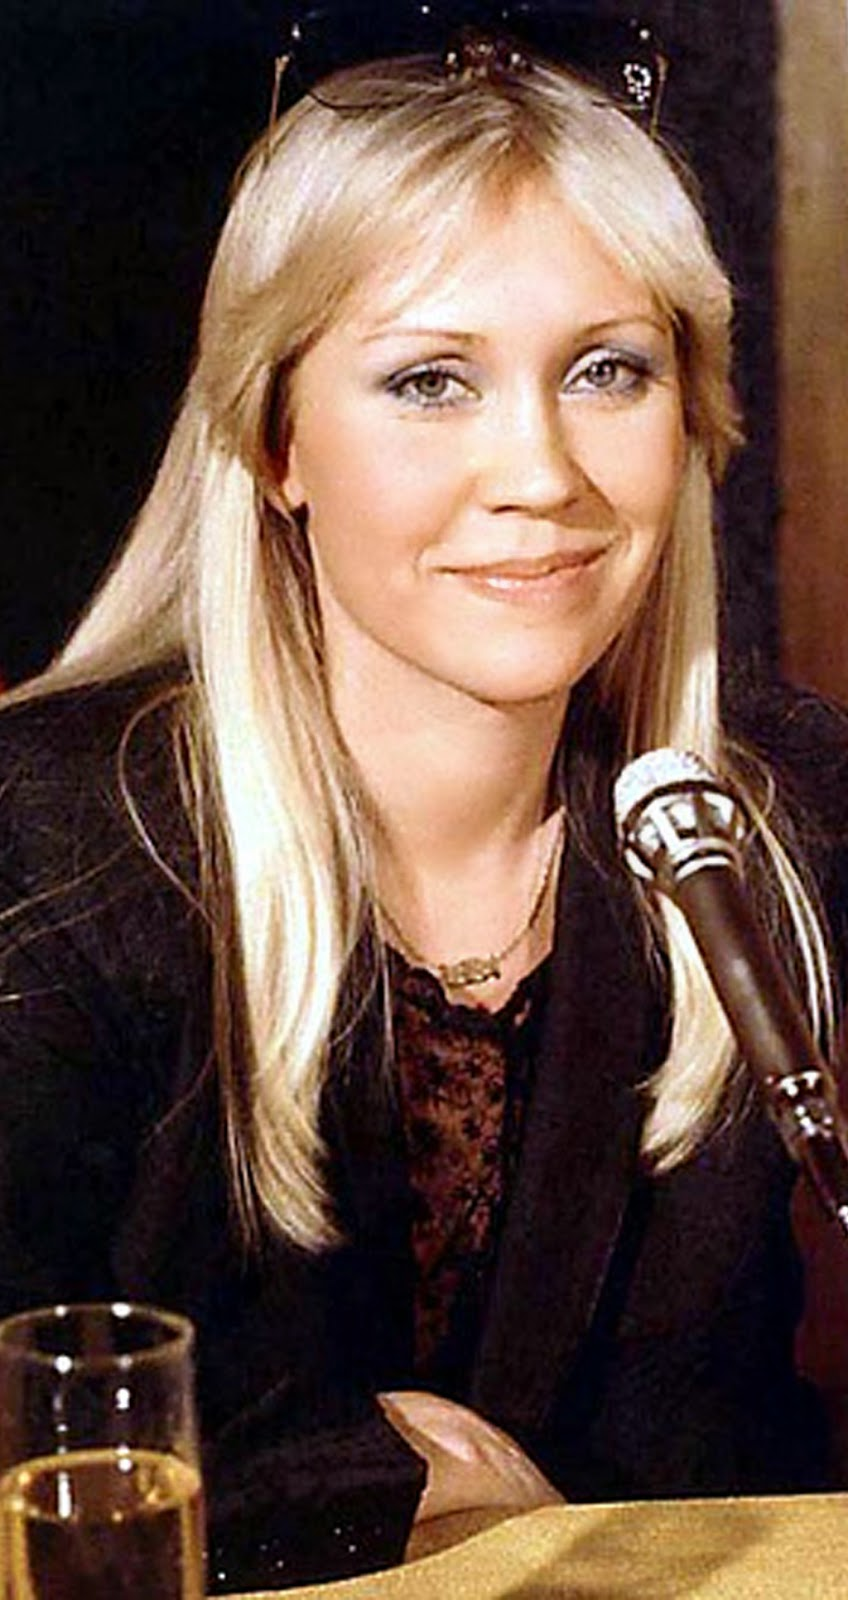 NOT TRUE Agnetha Fältskog Former ABBA lead singer Dies at 64